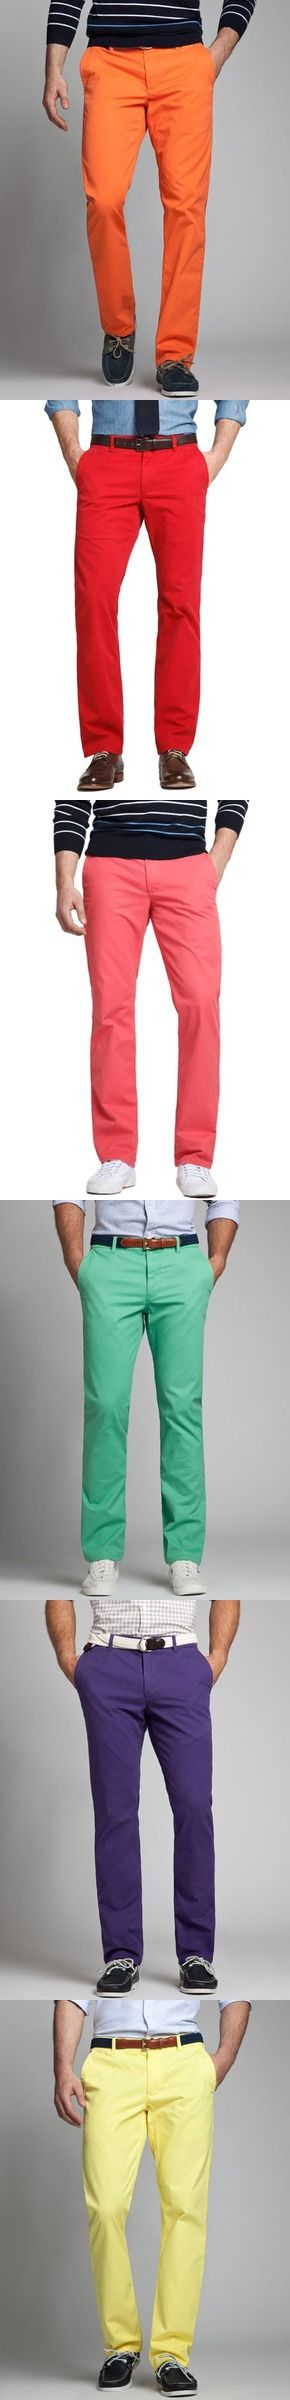 Just a few of the many different amazing-fit pants @Bonobos offers!